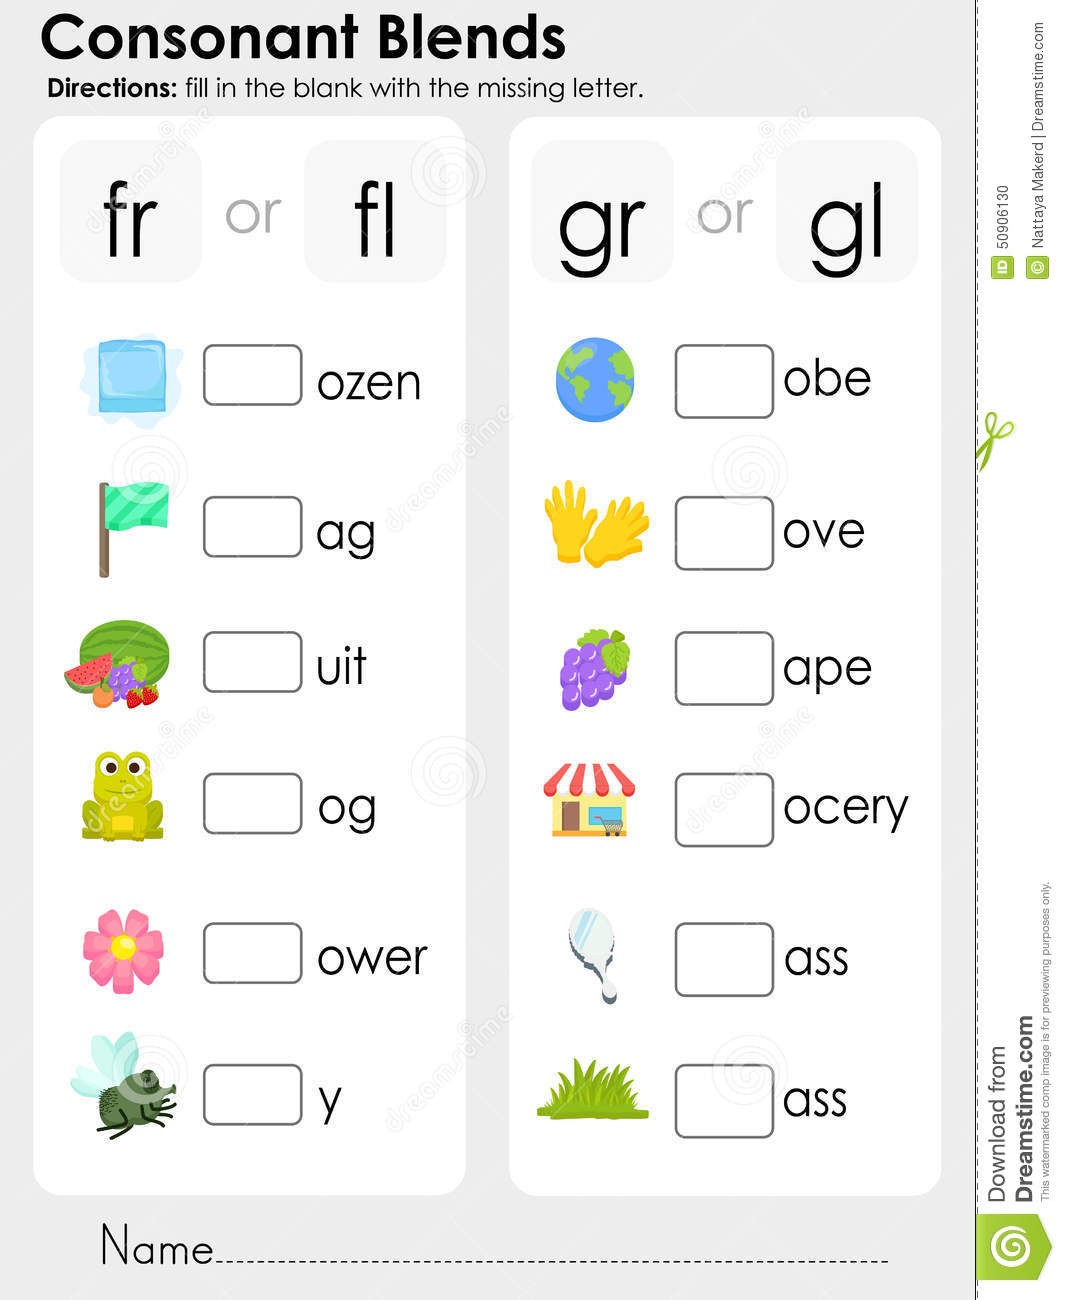 math worksheet : consonant blends  missing letter  worksheet for education stock  : Consonant Blends Worksheets For Kindergarten